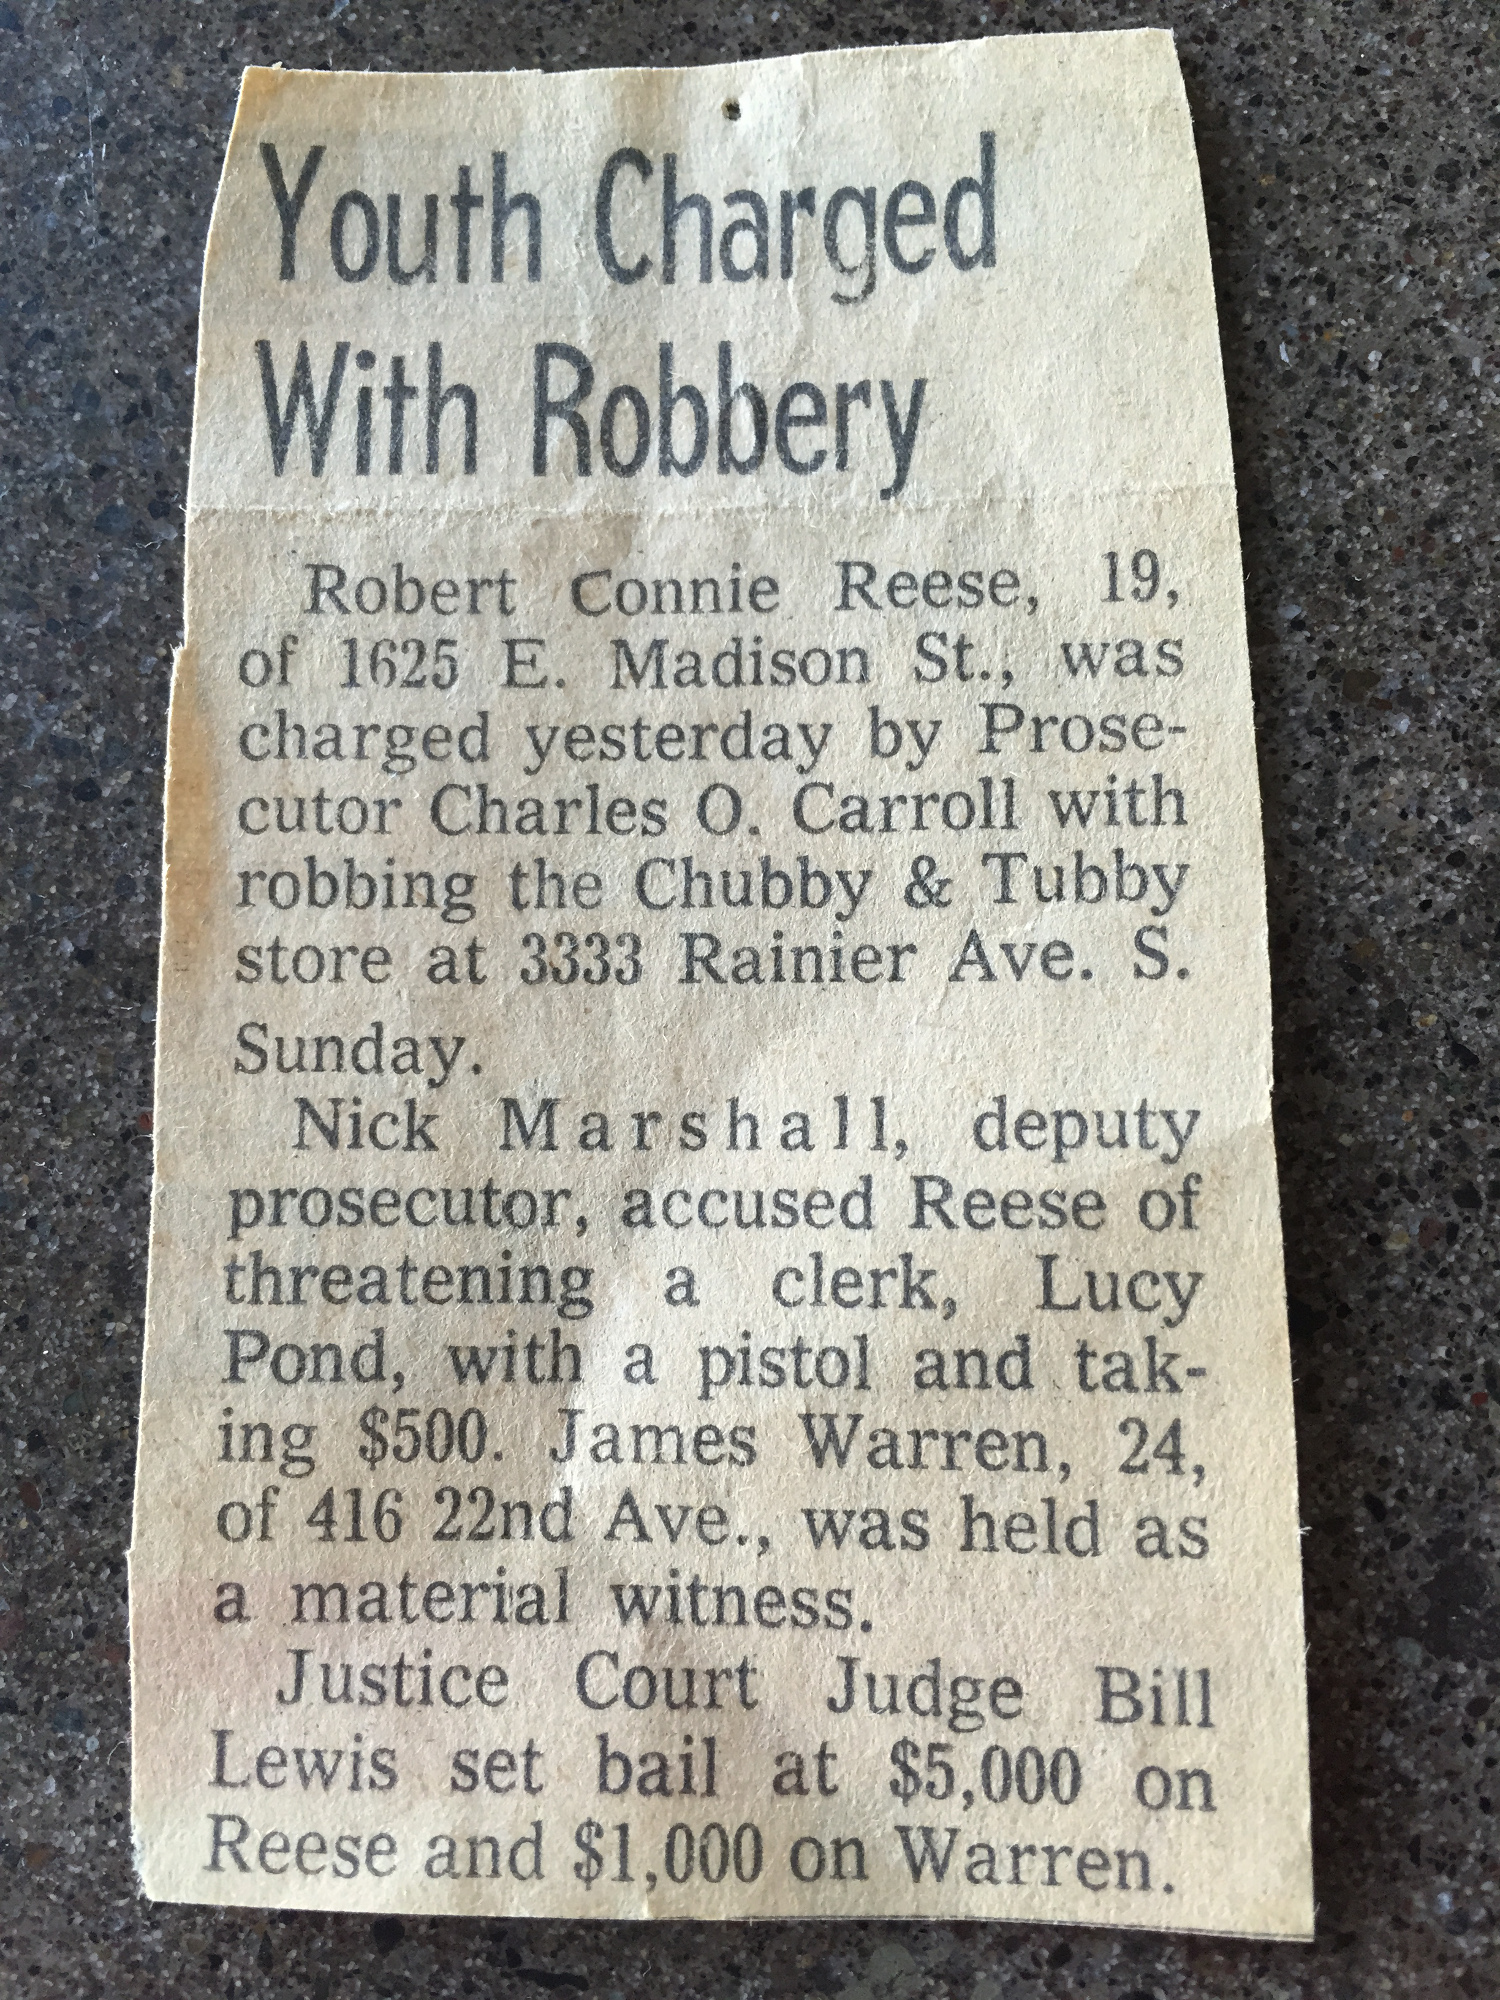 Robbery newspaper clipping